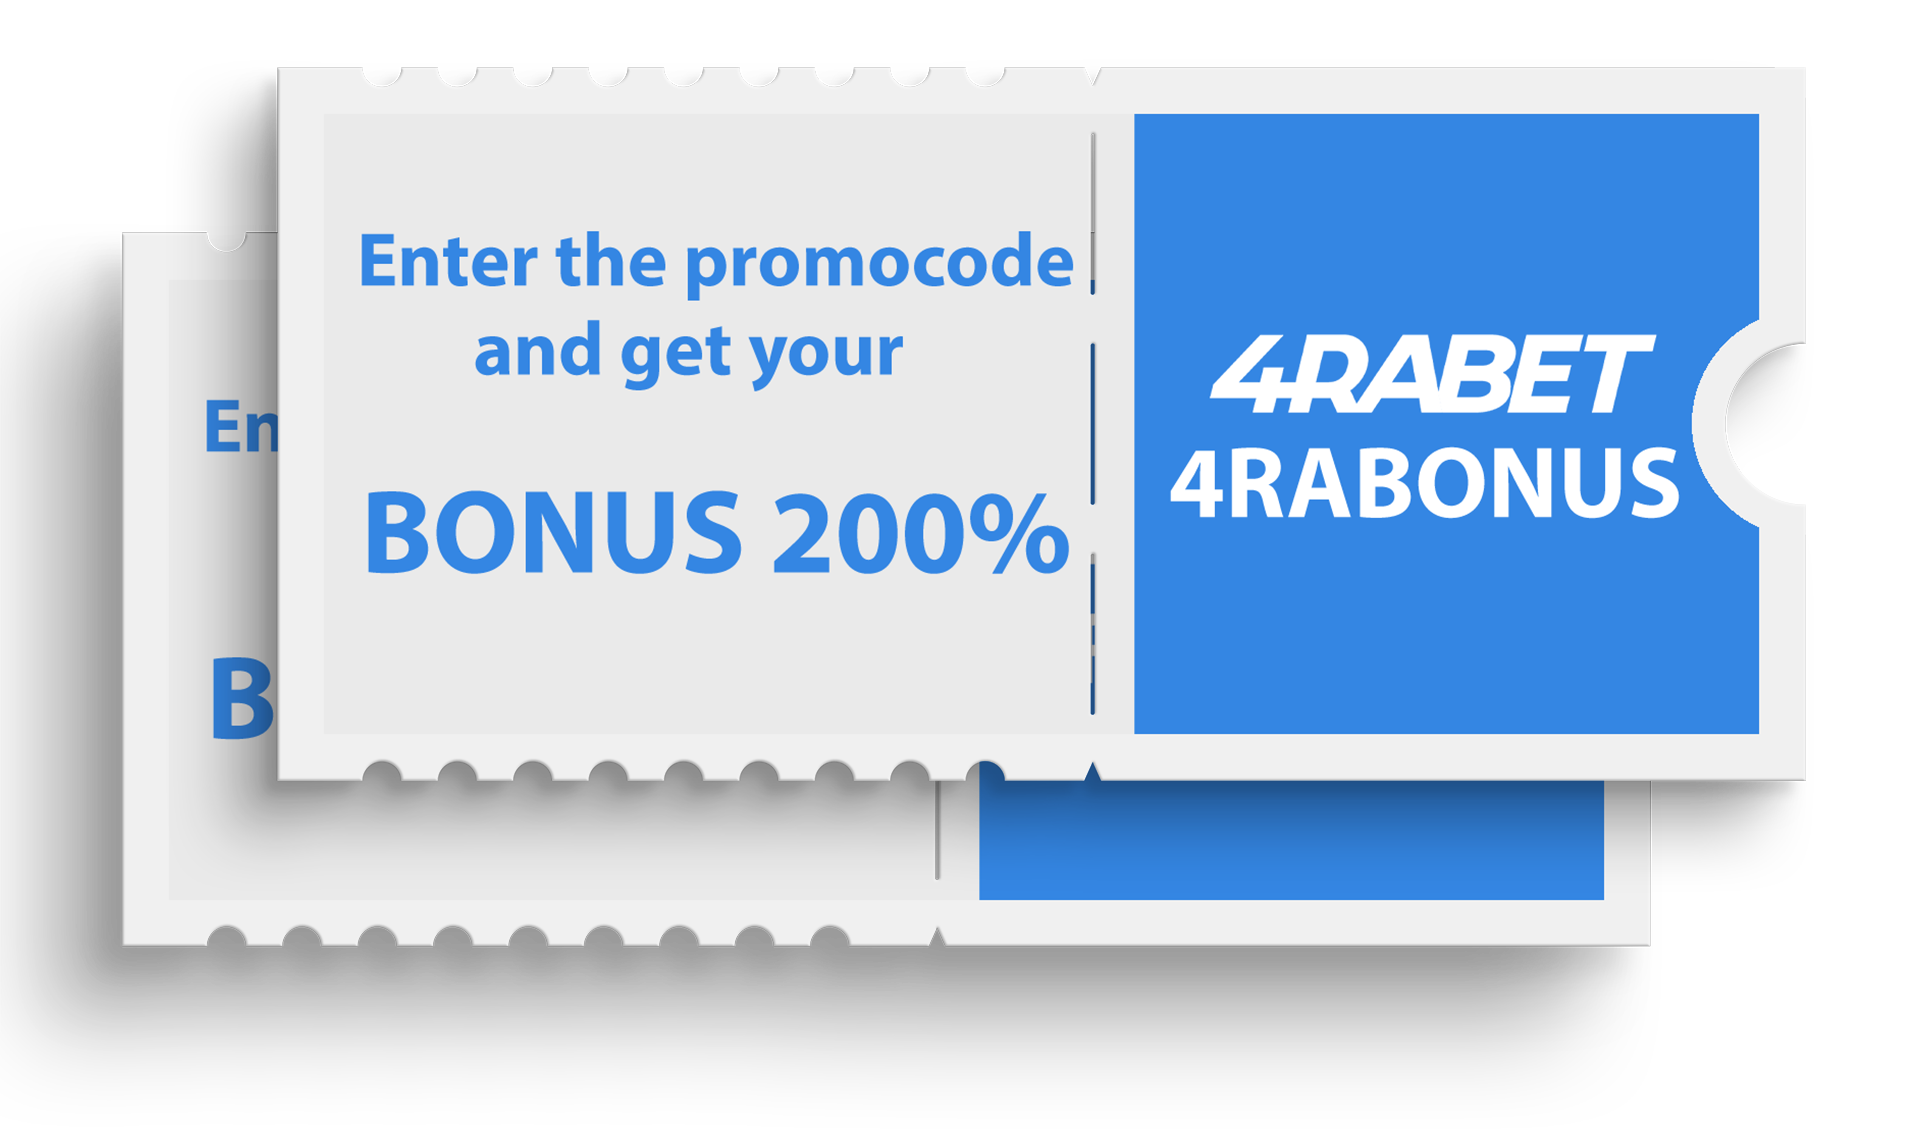 Use our promocode to get advantages after registration and depositing at 4rabet.